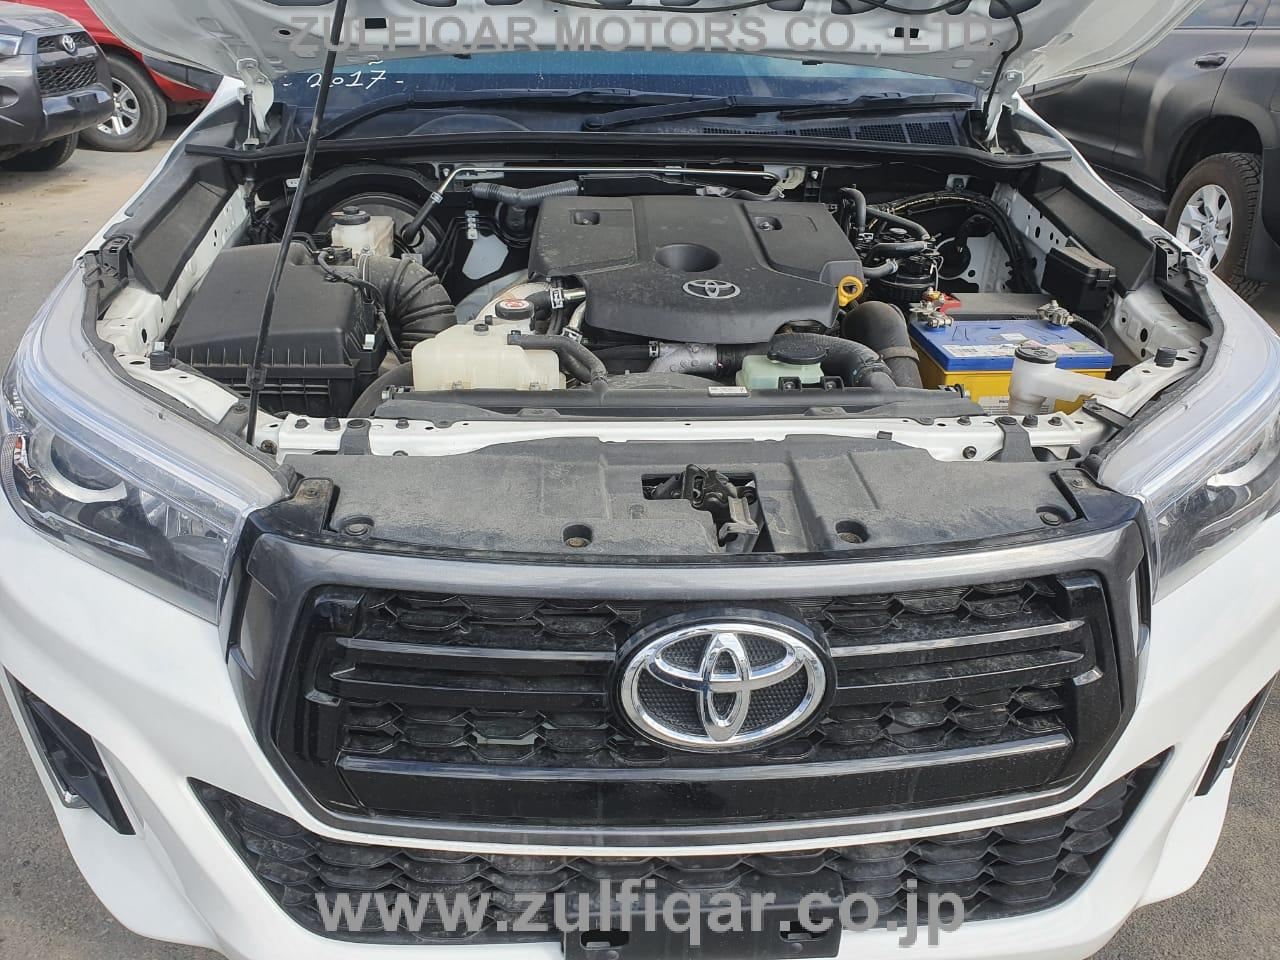 TOYOTA HILUX PICK UP 2017 Image 9